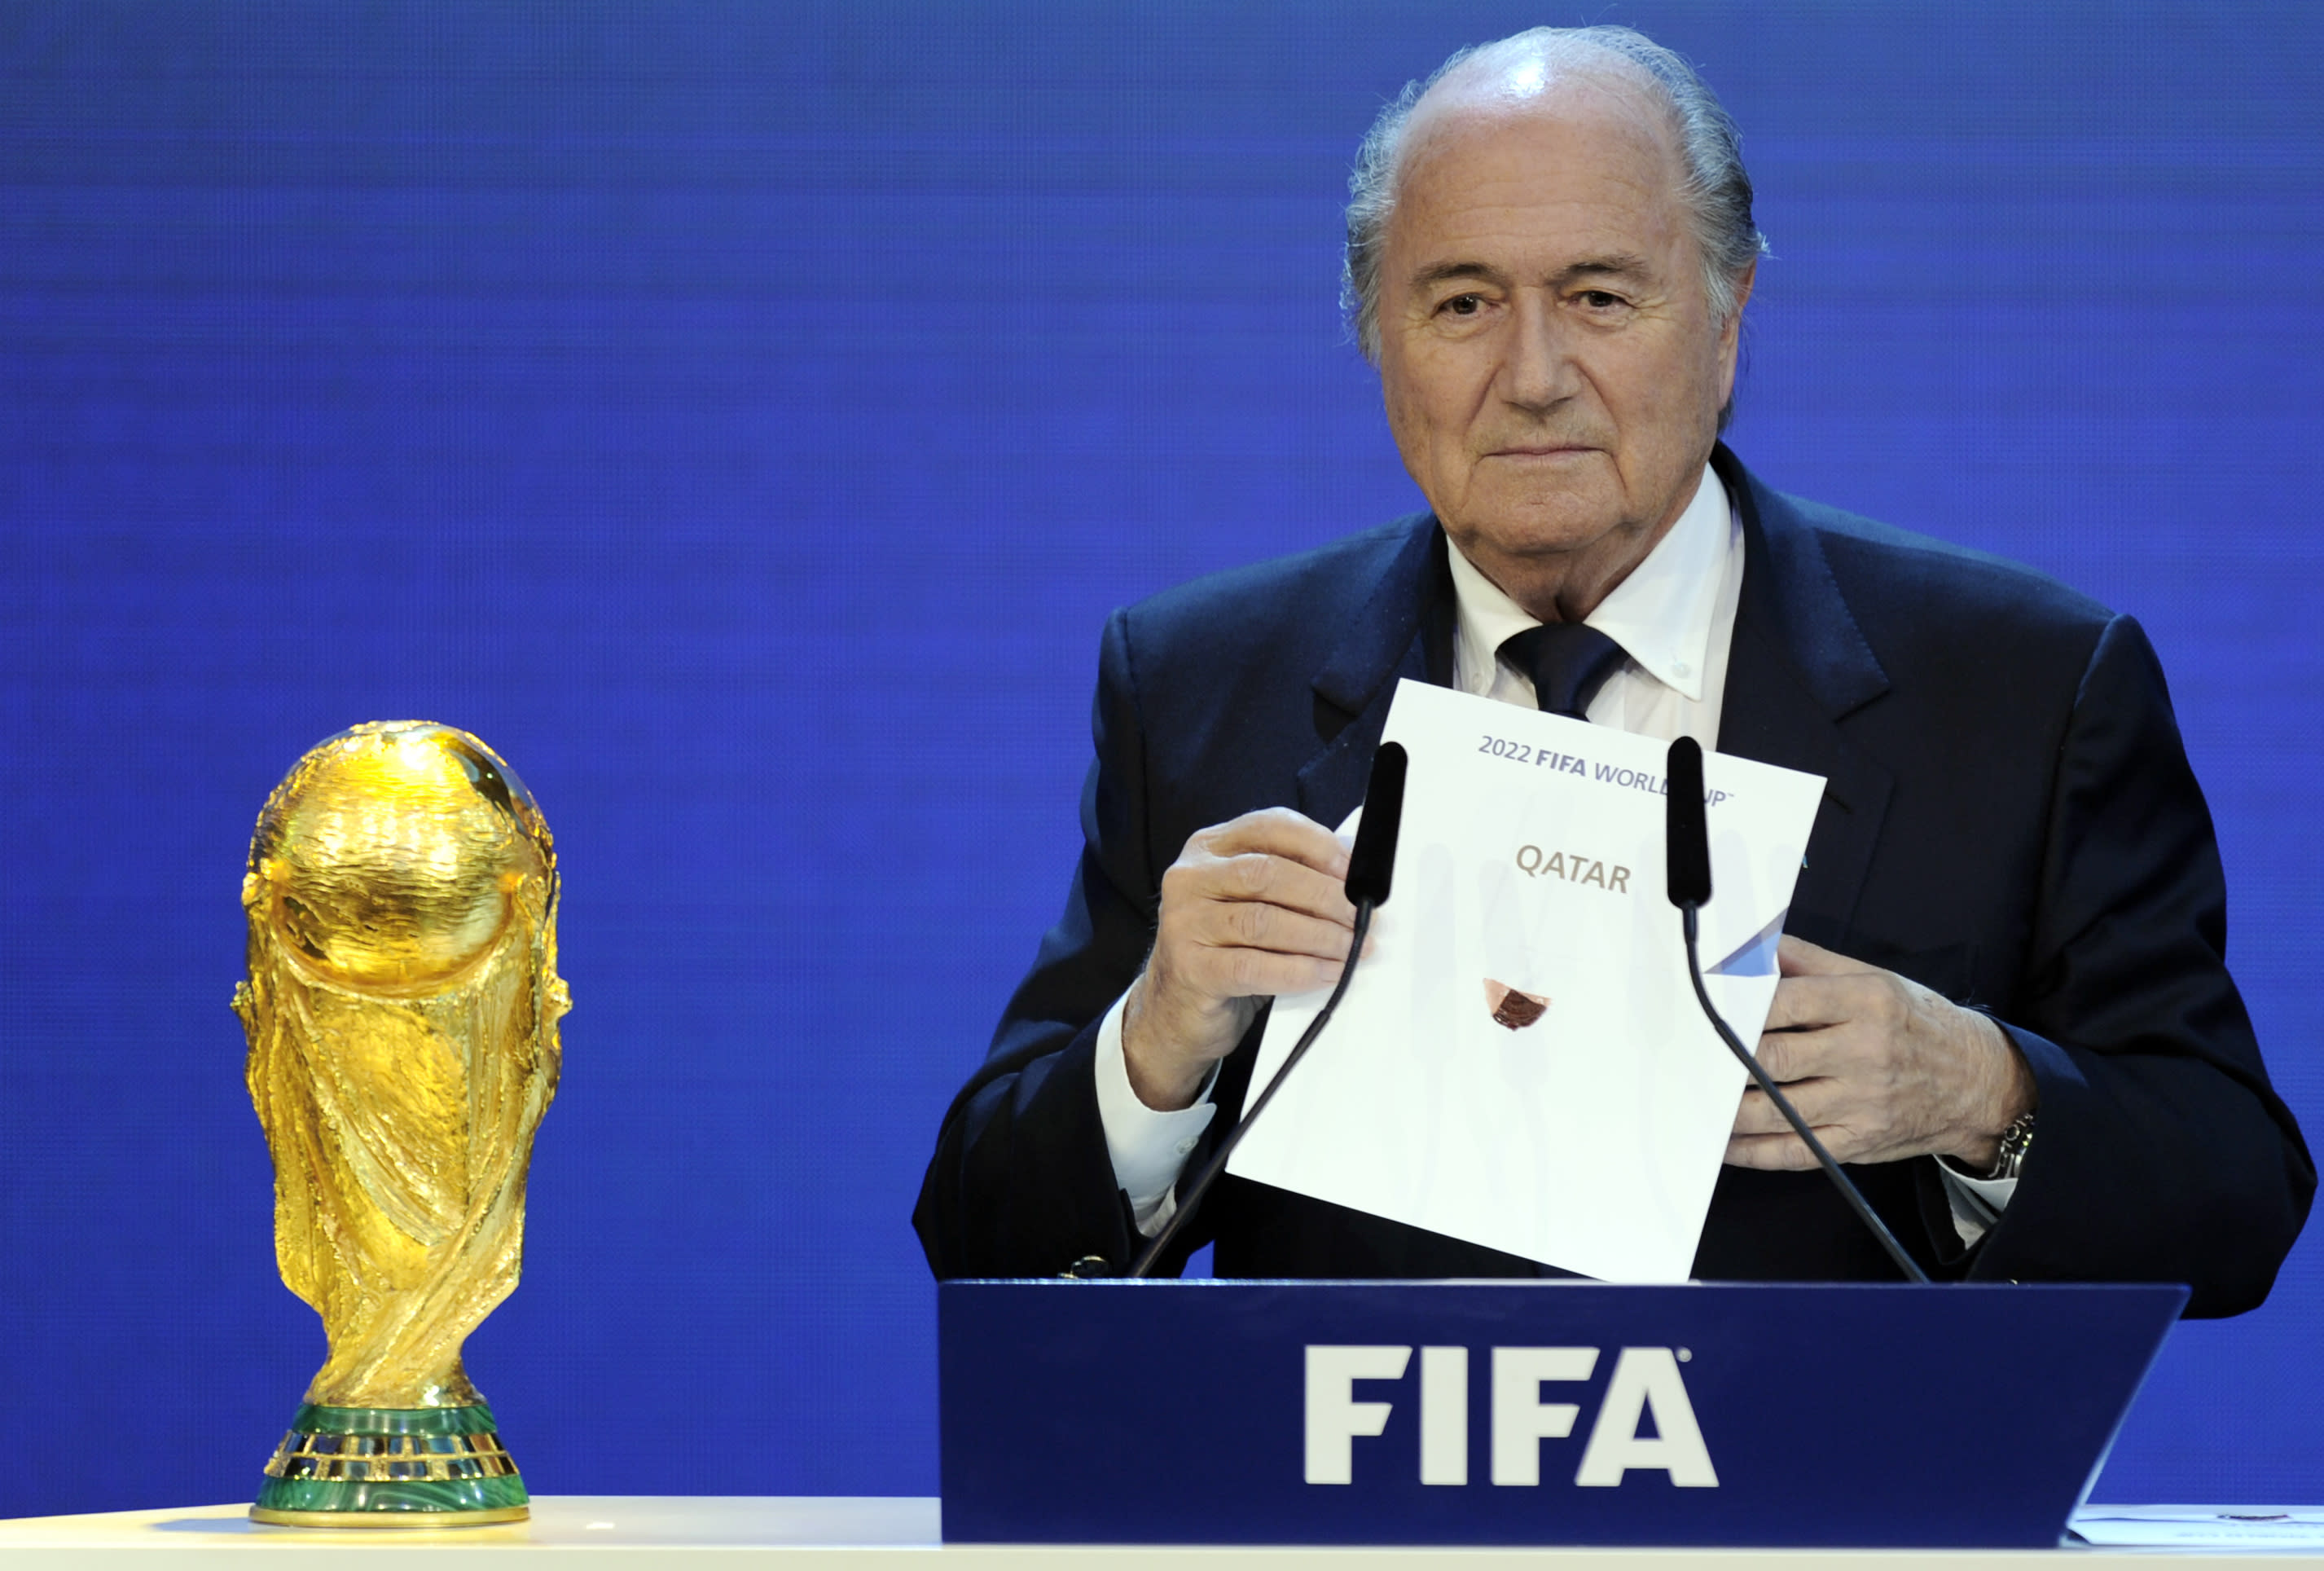 Council of Europe calls for revote on 'flawed' 2022 World Cup bid